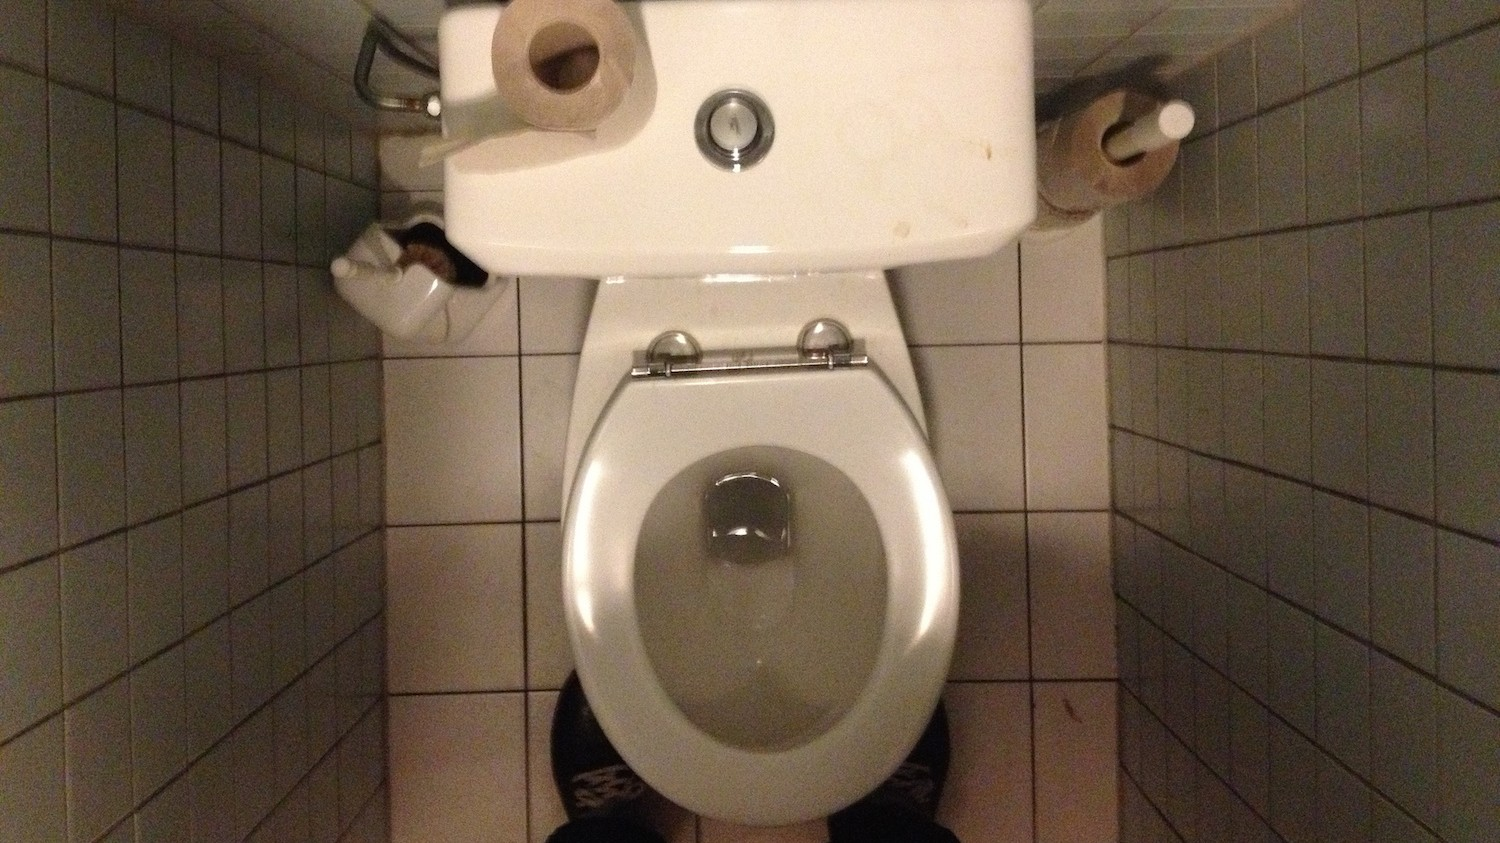 It's Totally OK to Sit on Public Toilet Seats